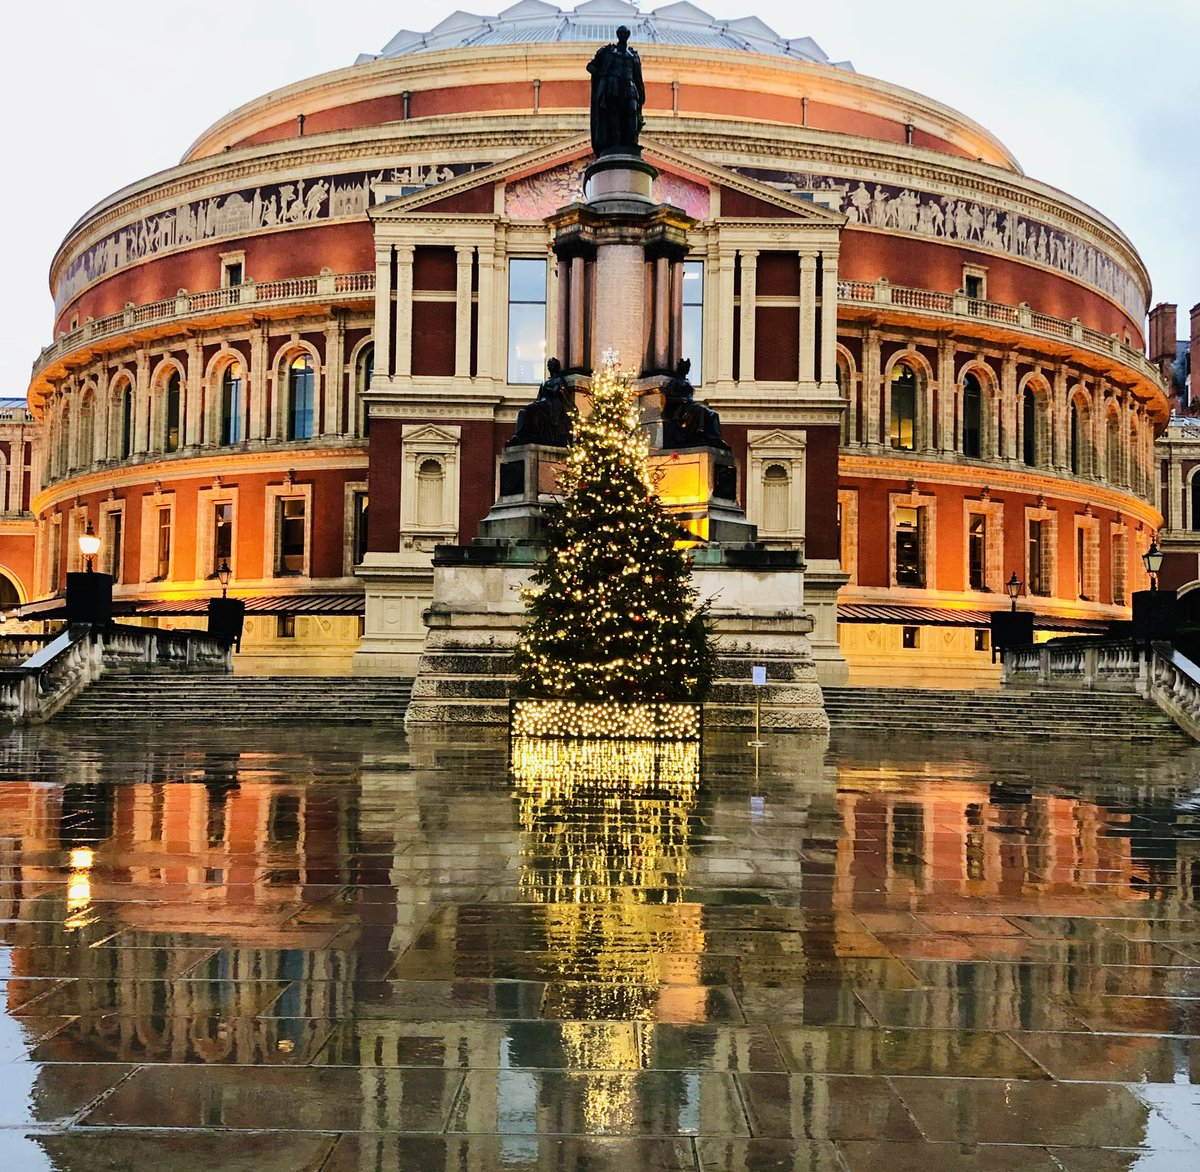 Glowing golden 🤩 She might be asleep for now but @RoyalAlbertHall still got it!